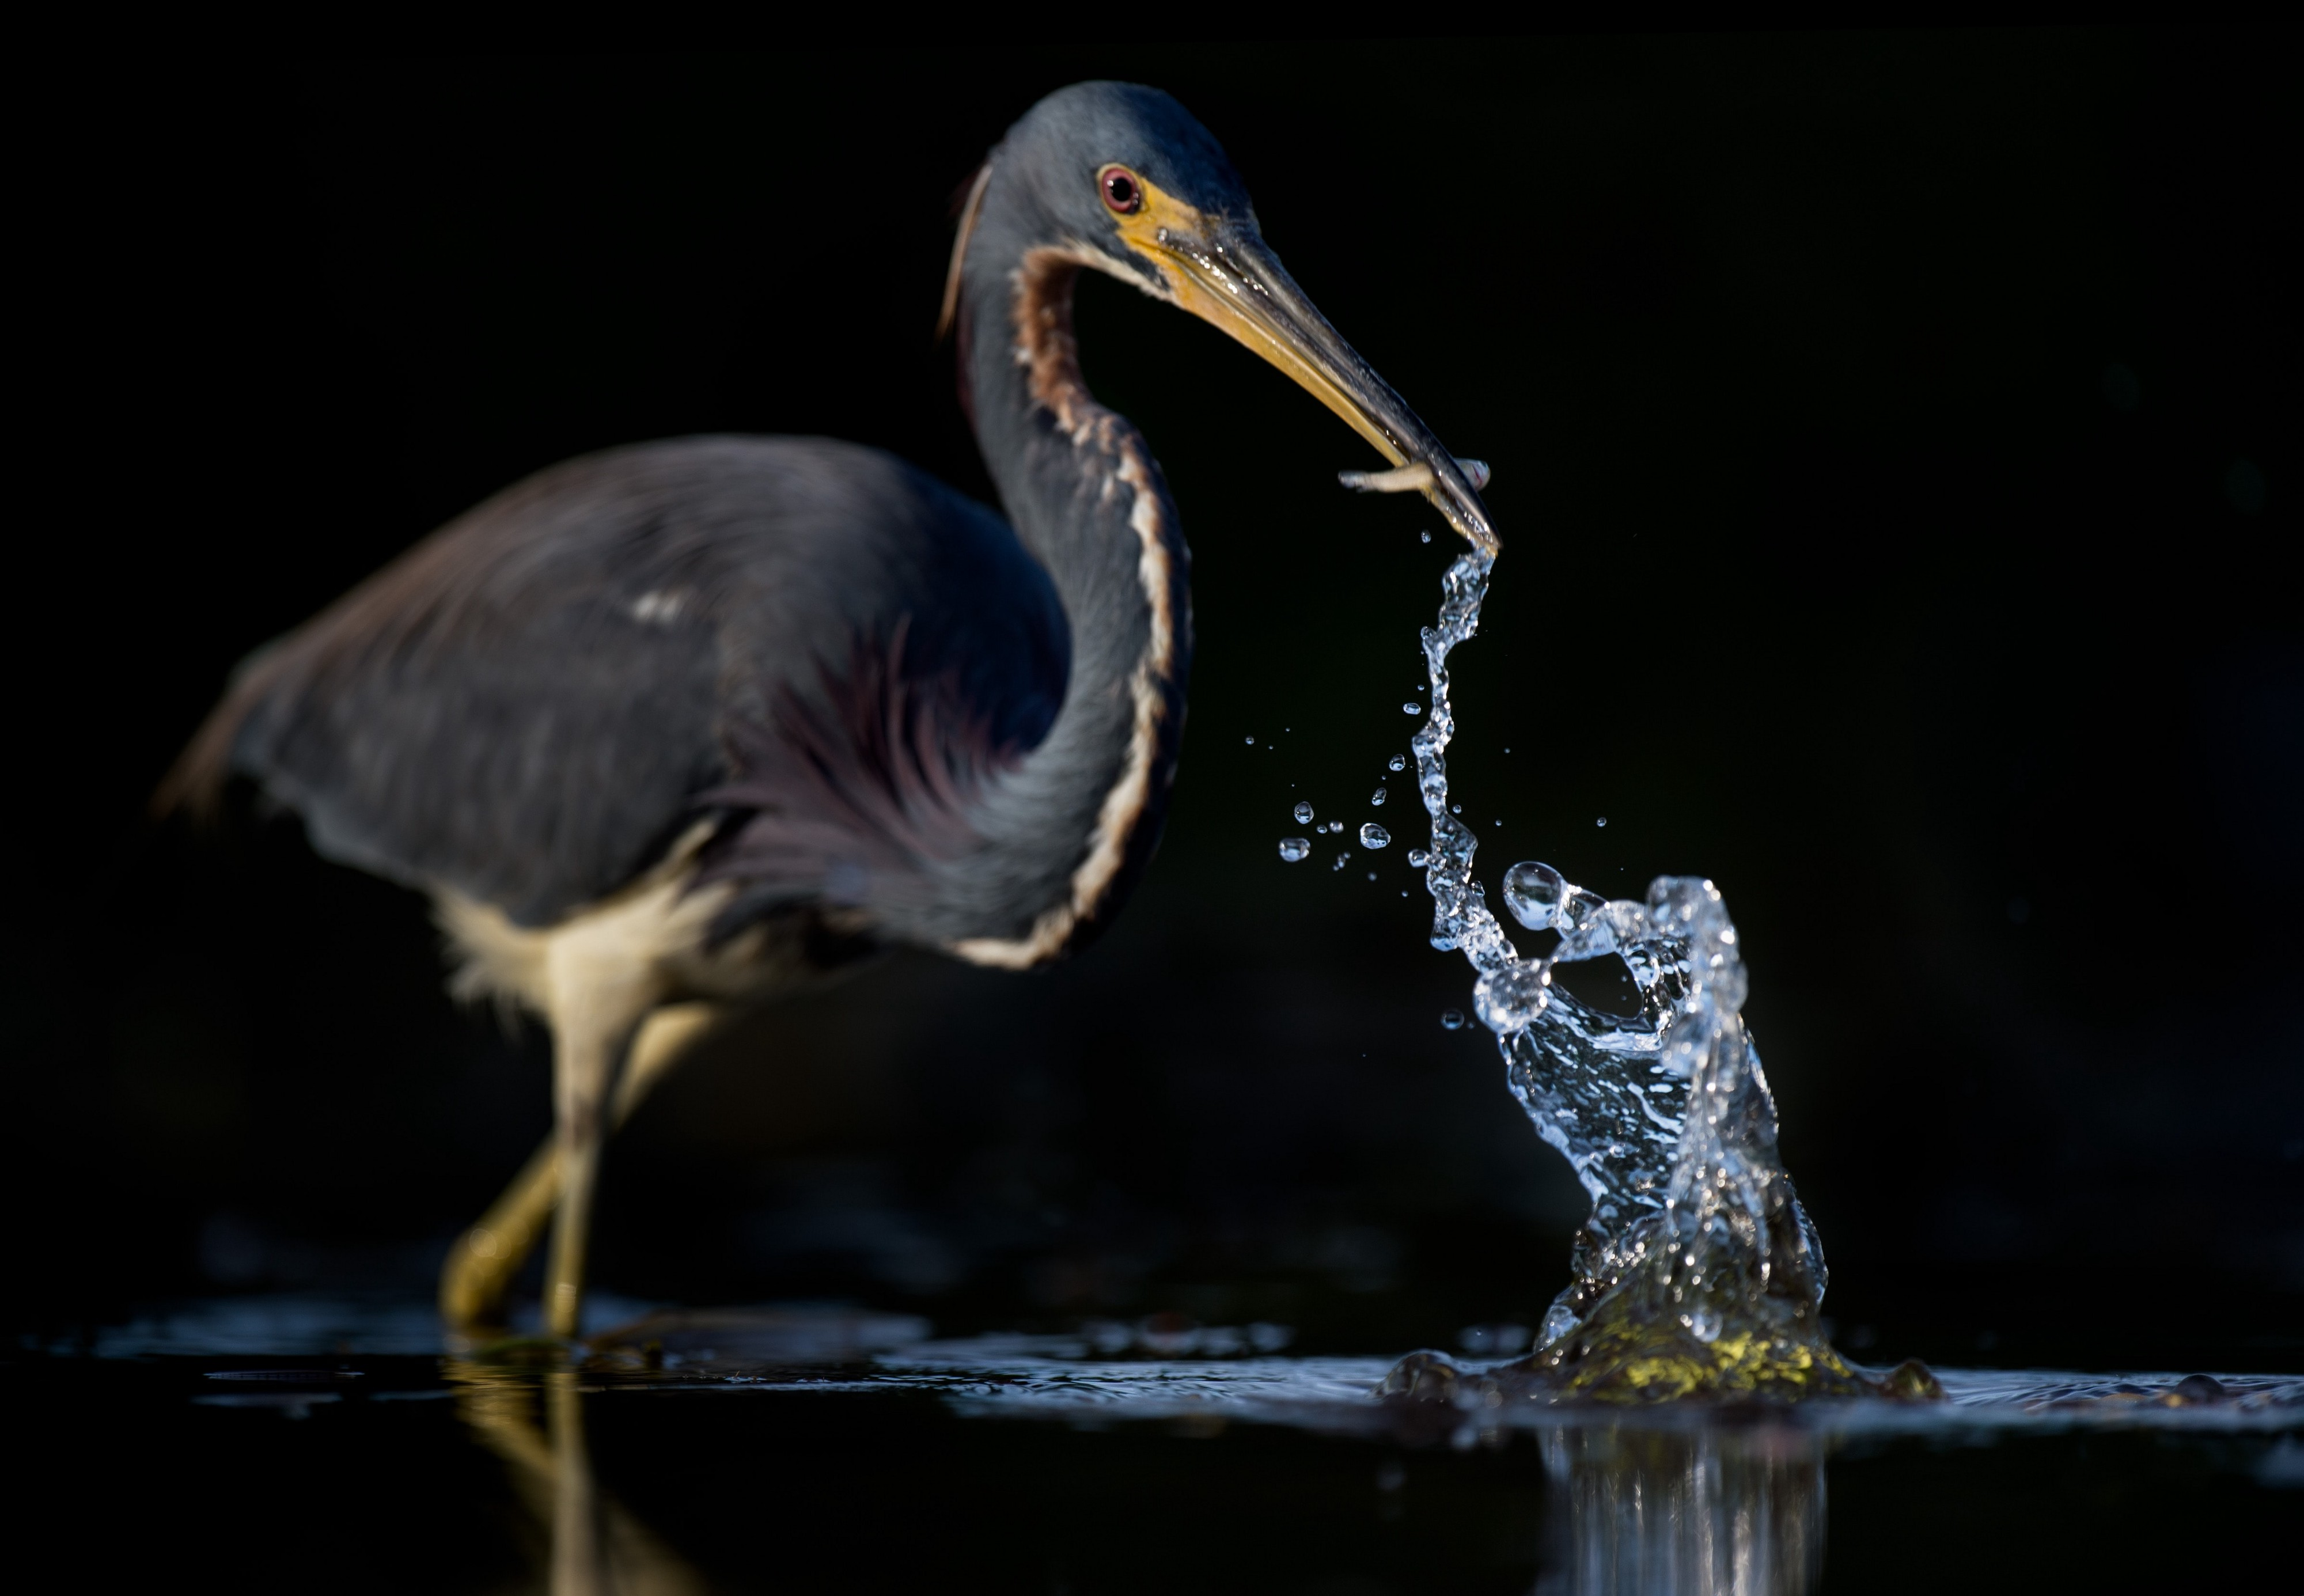 A Heron just getting one fish